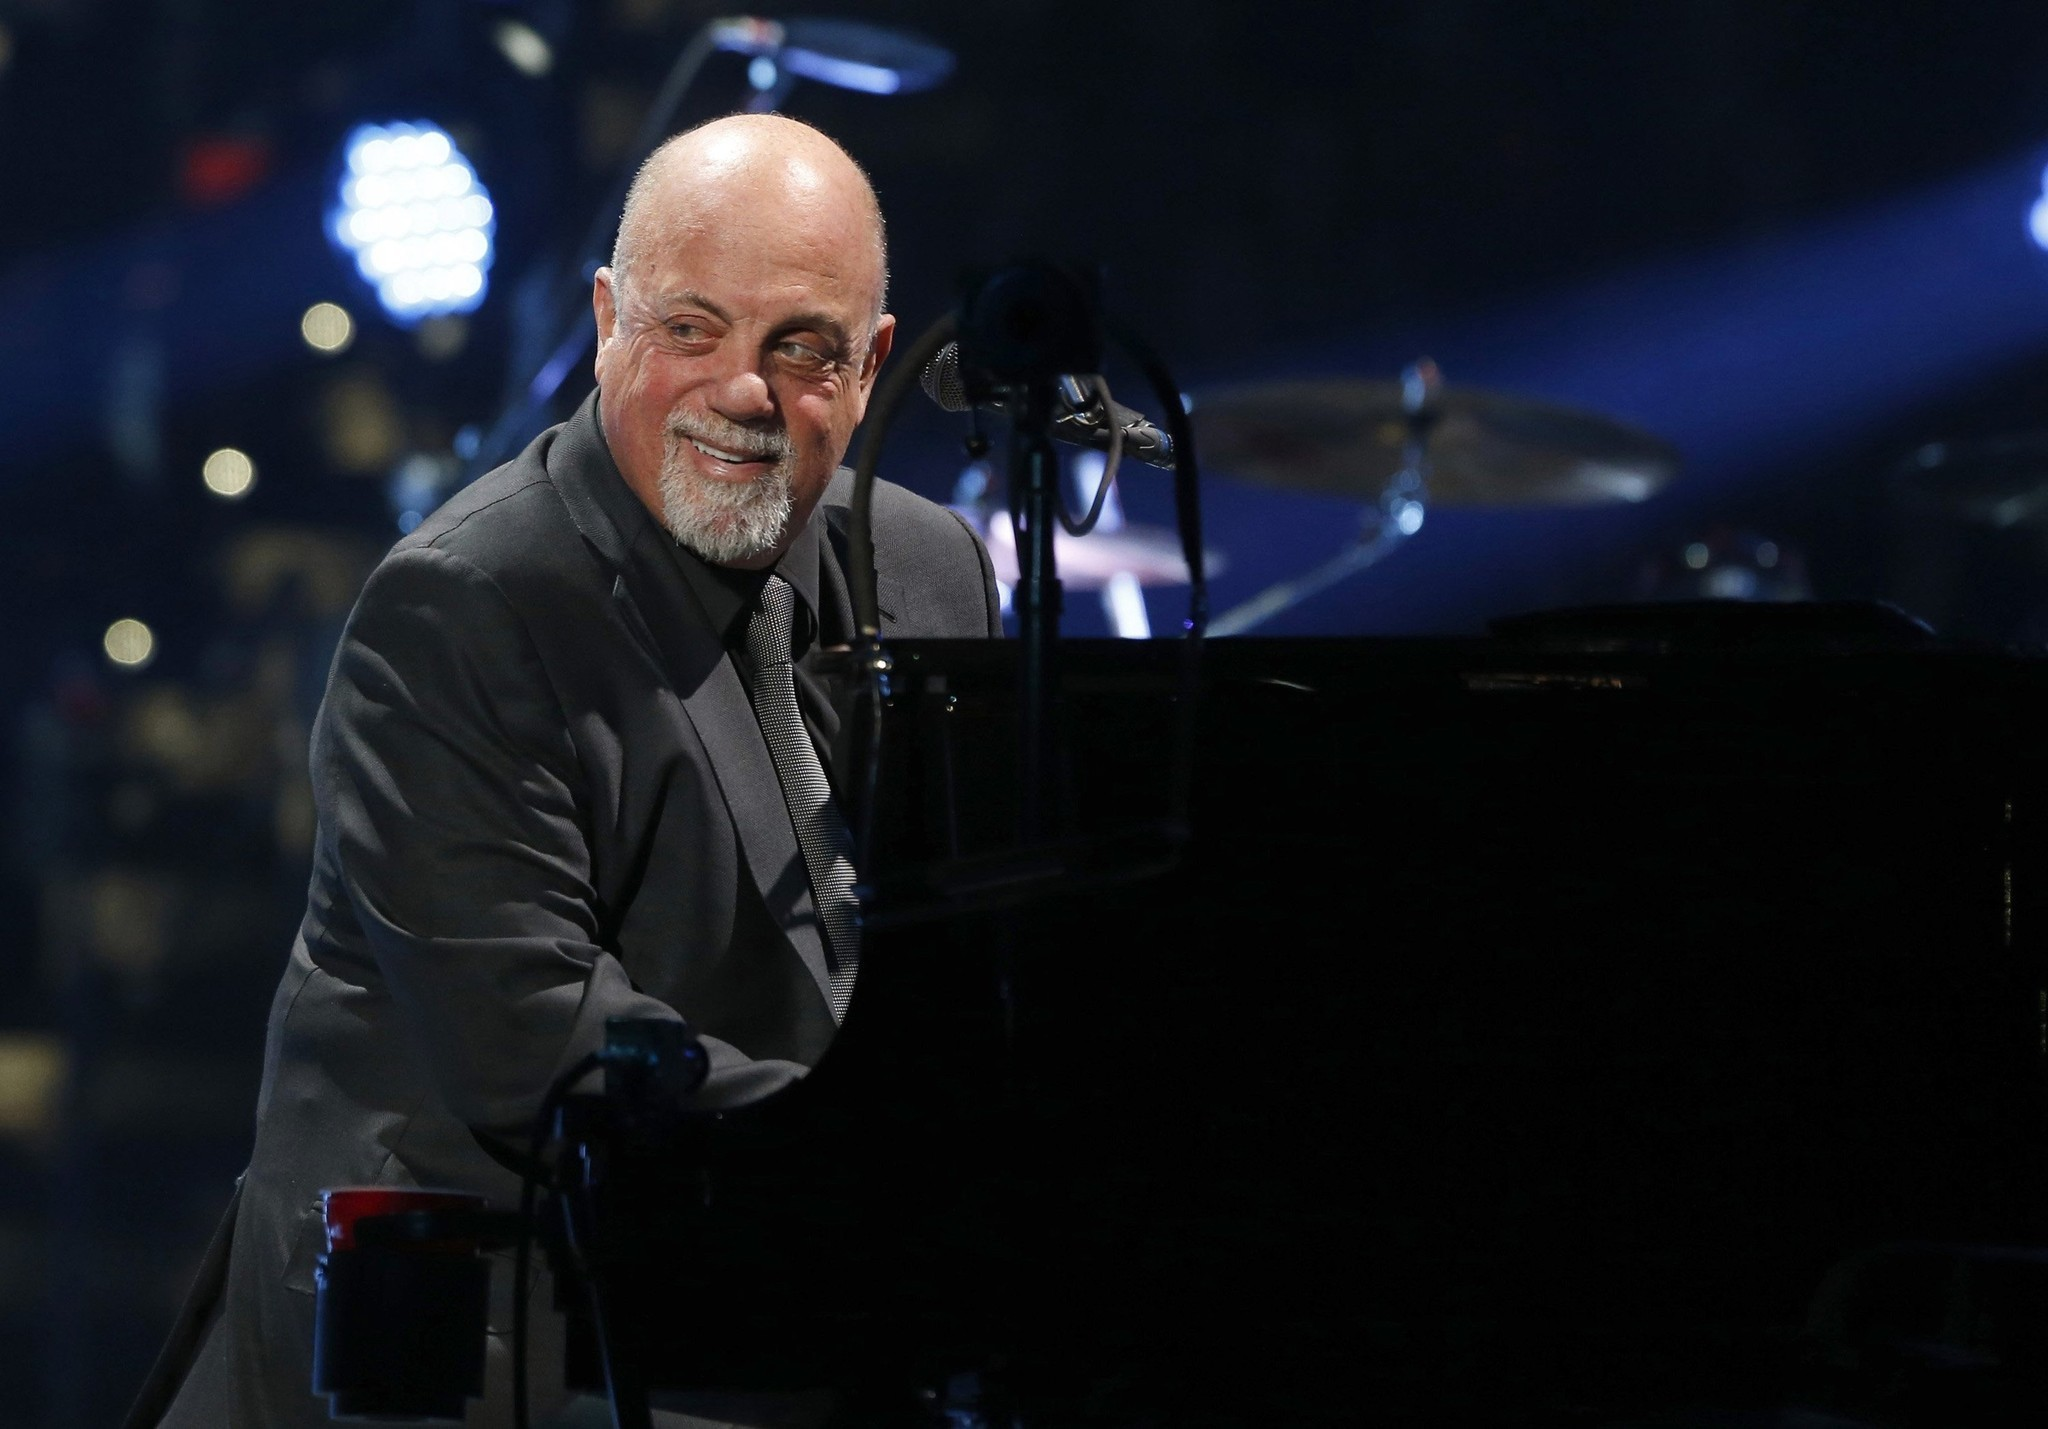 Billy Joel Orlando concert set for Amway Center - Sun Sentinel